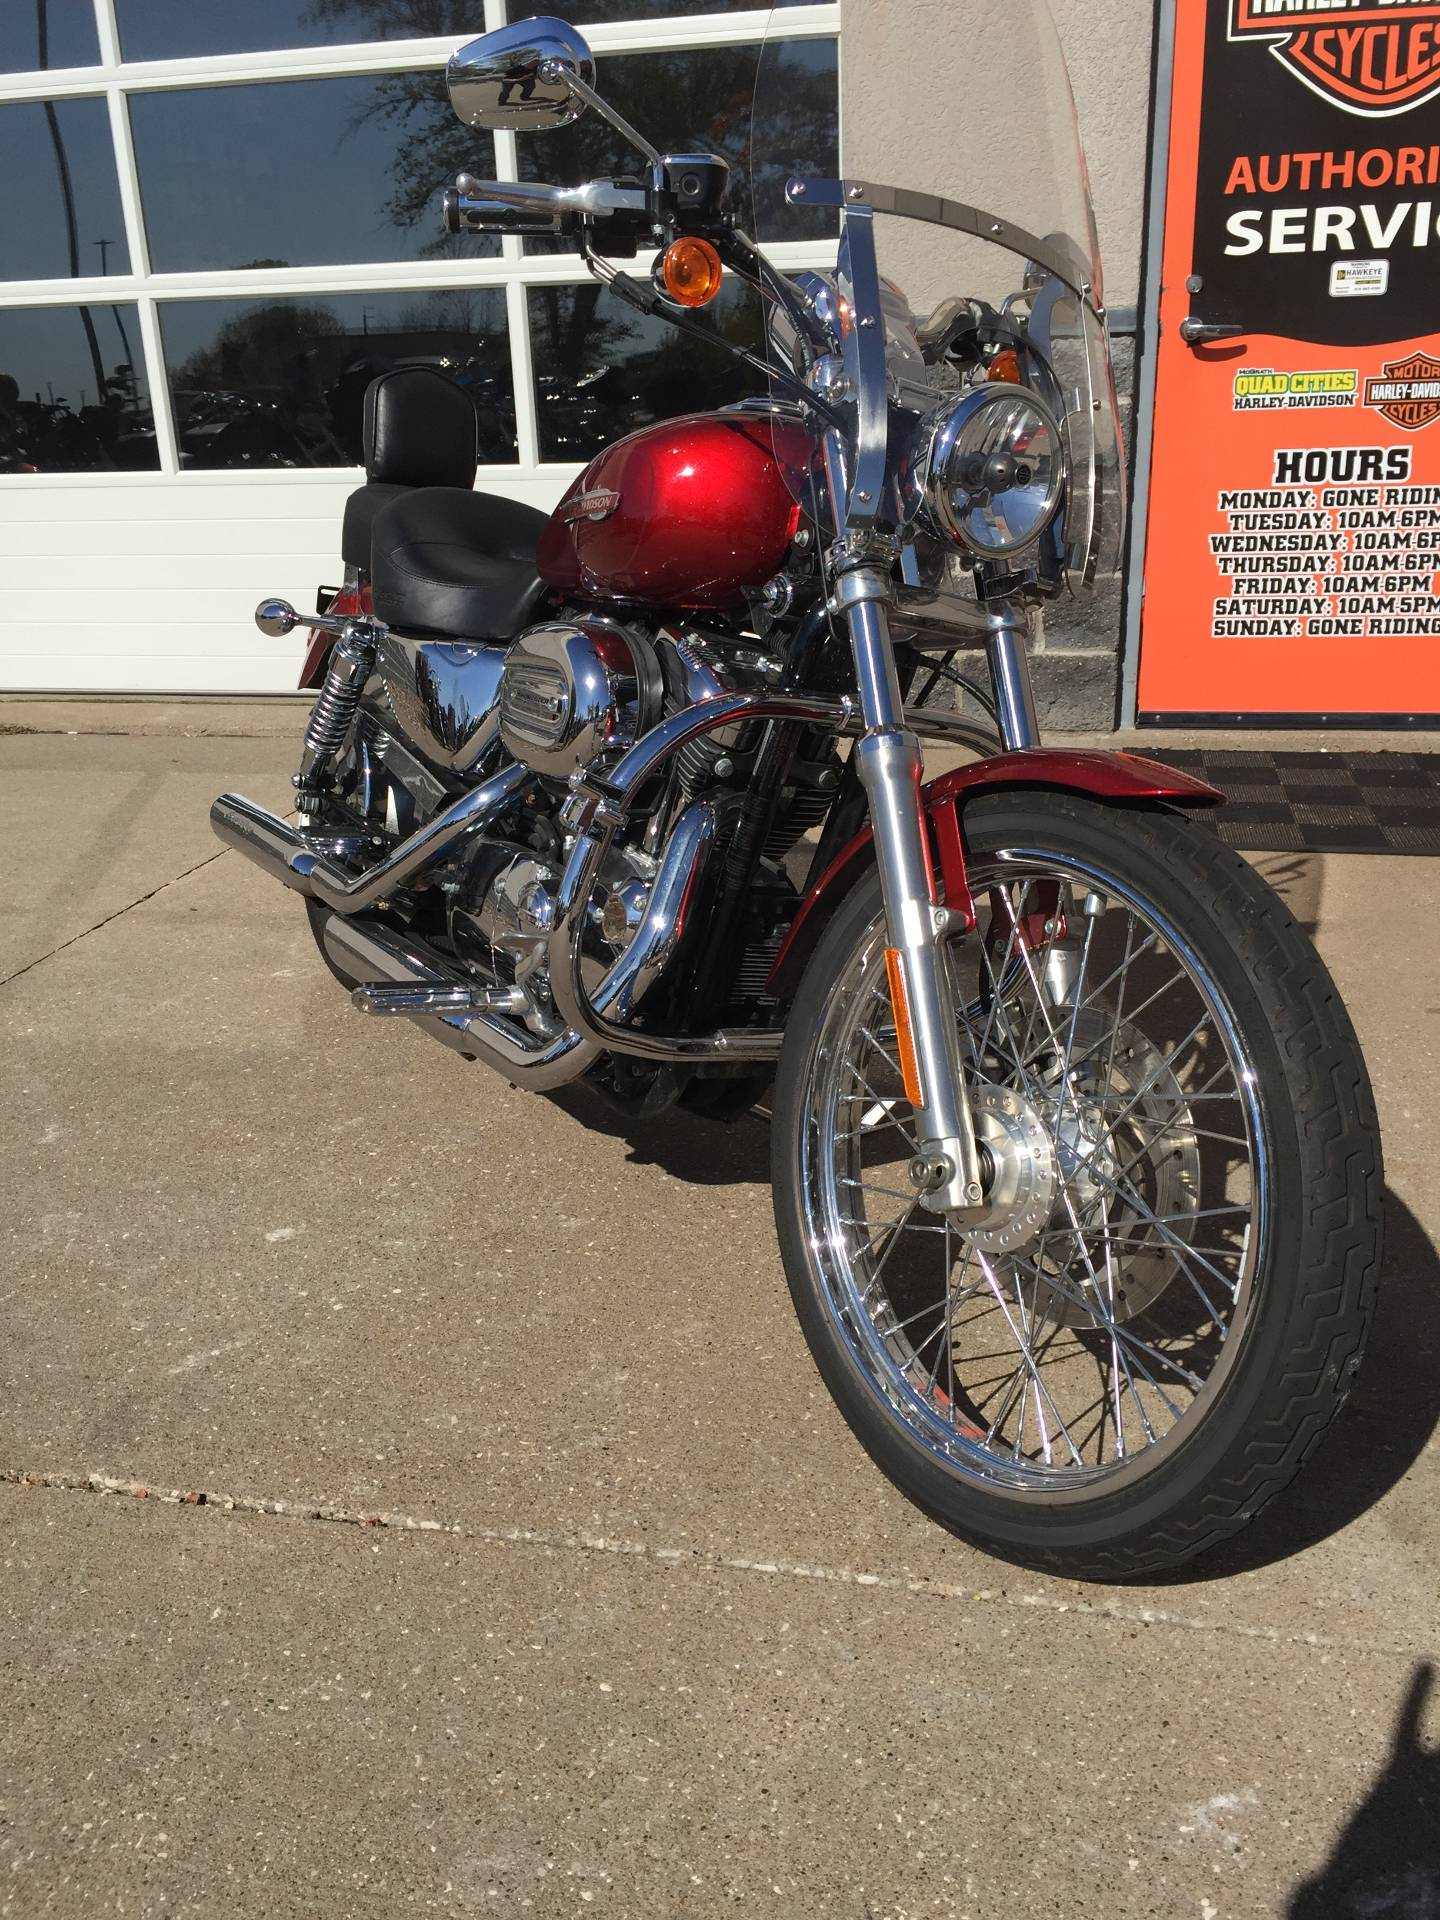 2008 Harley-Davidson XL1200C in Davenport, Iowa - Photo 2